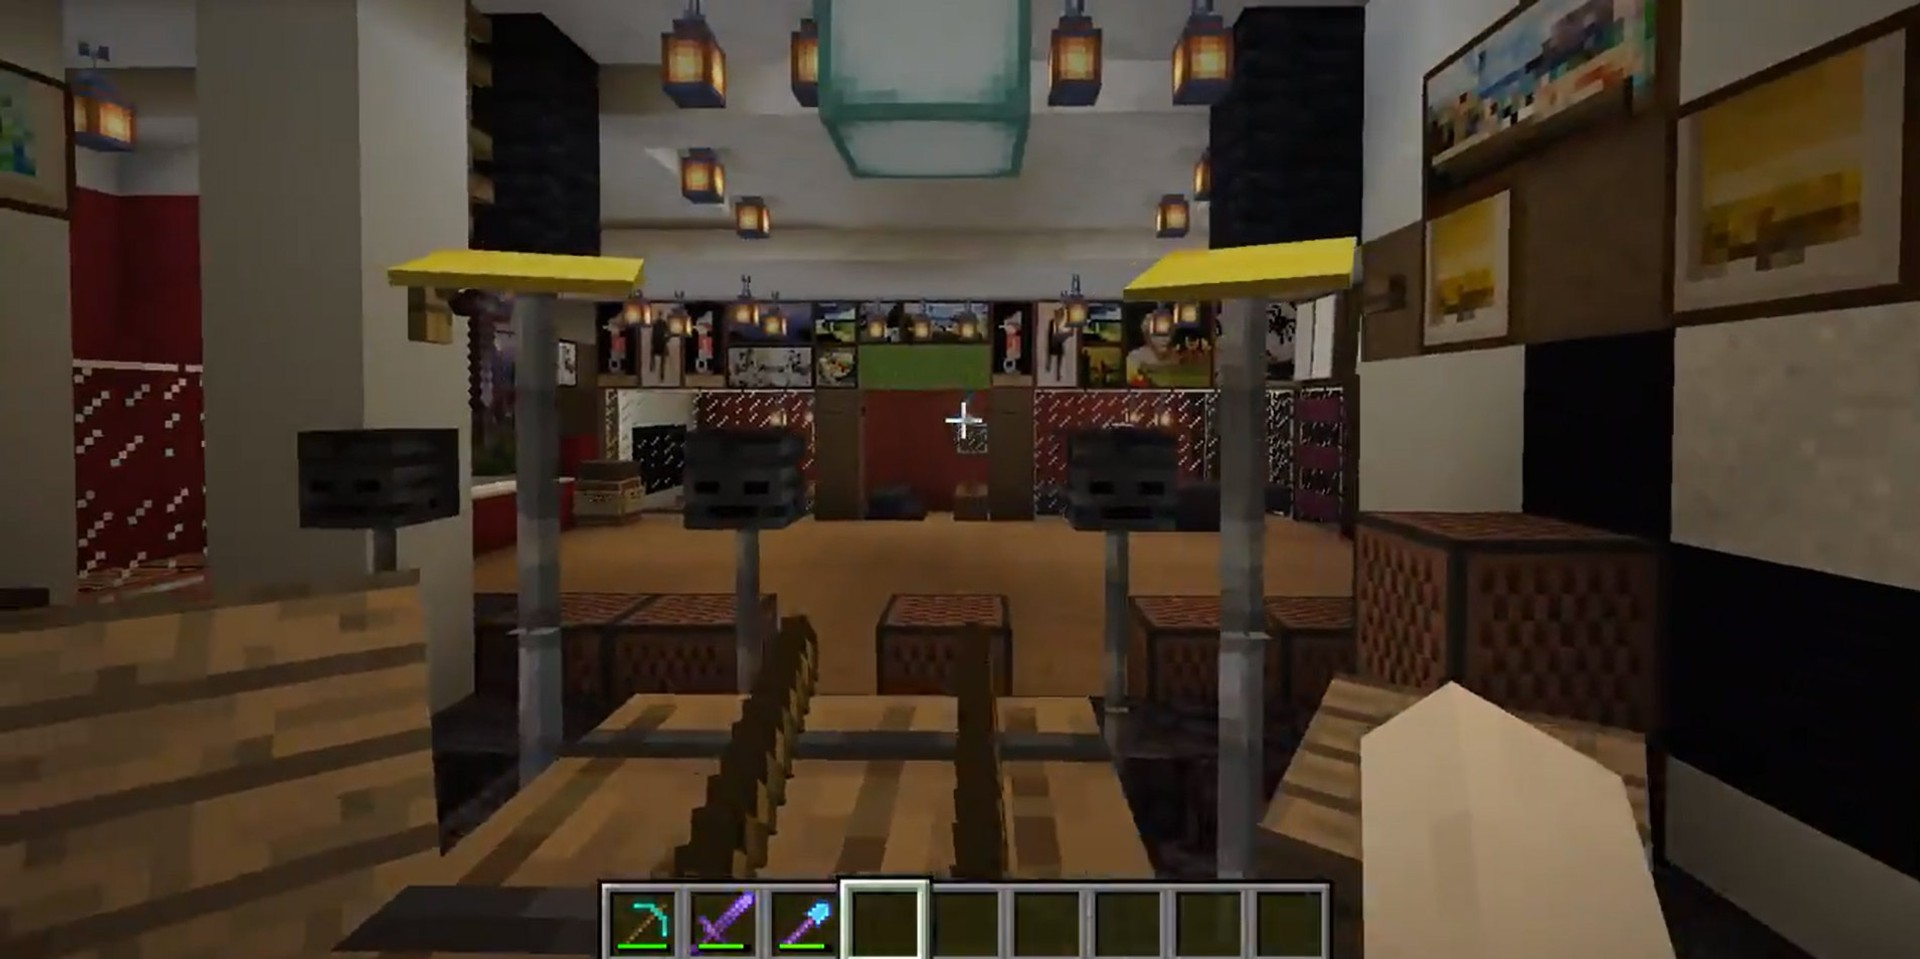 Take a virtual tour of Route 196 on Minecraft